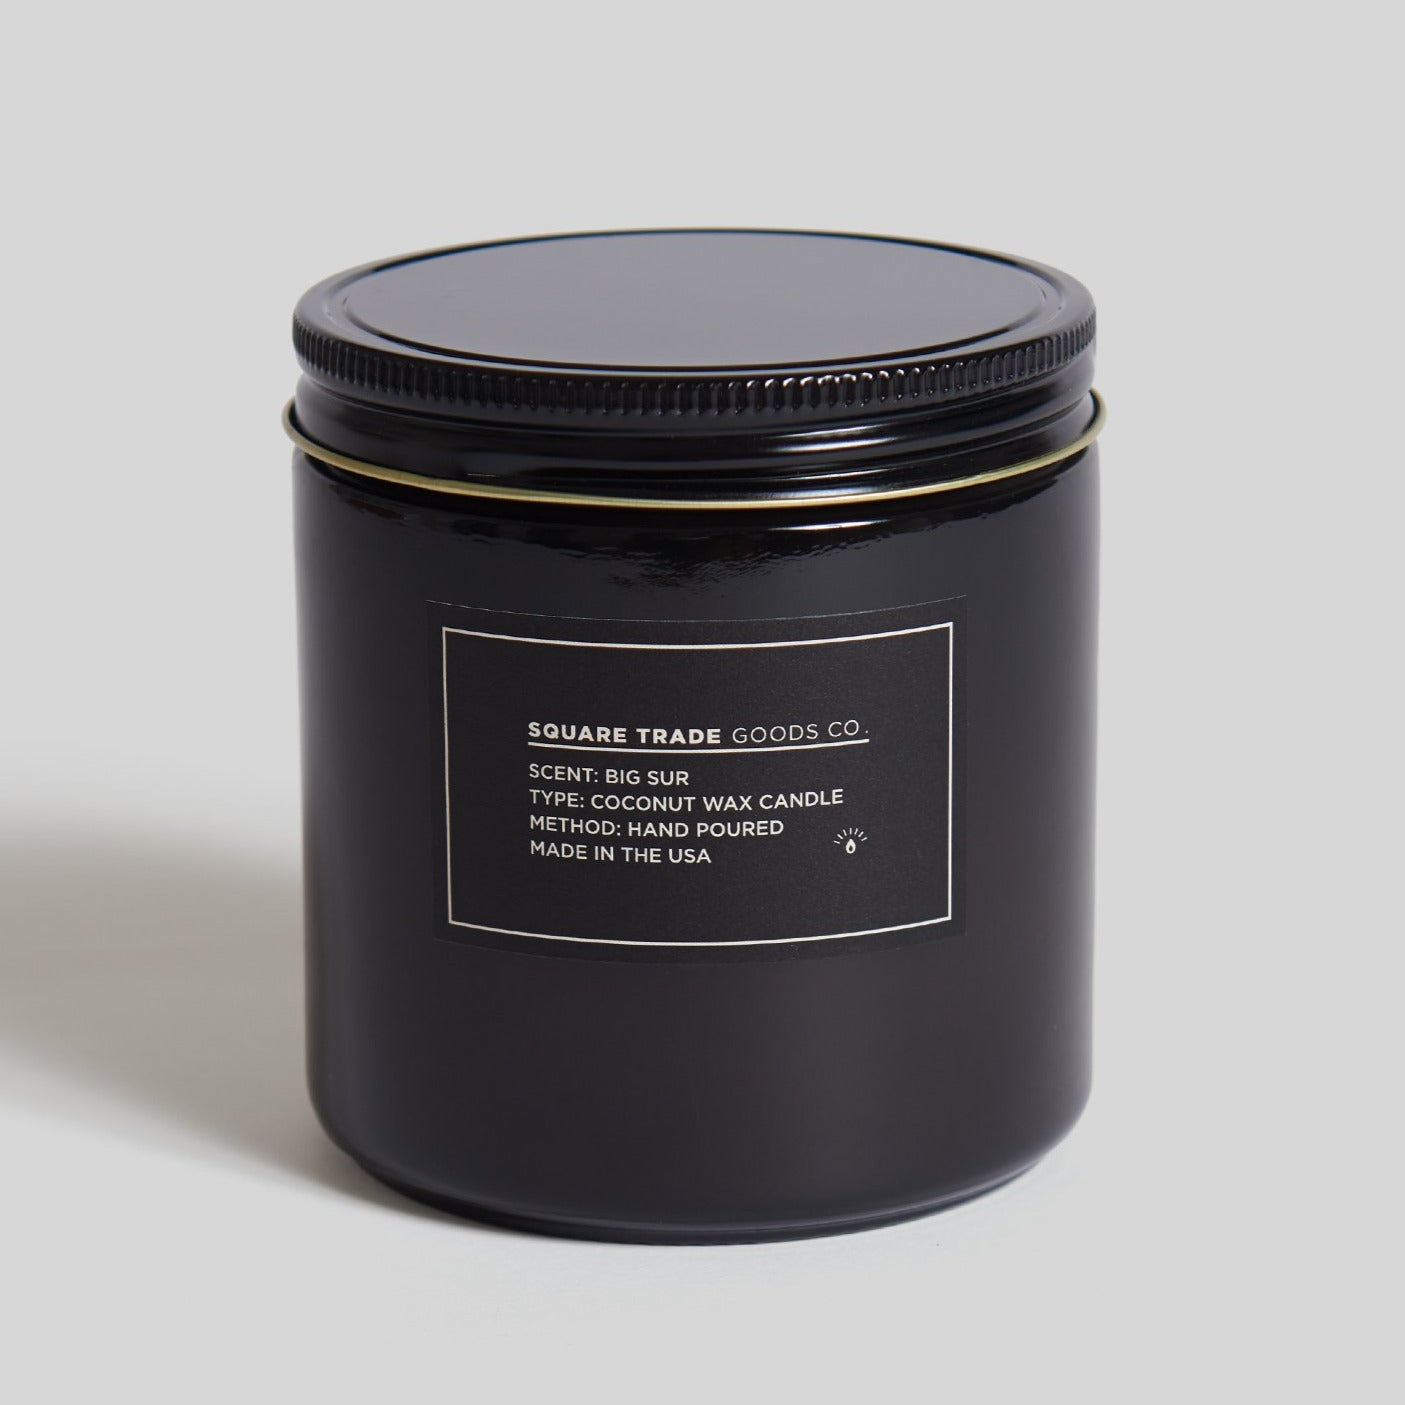 Square Trade Goods 16 oz Candle - Big Sur